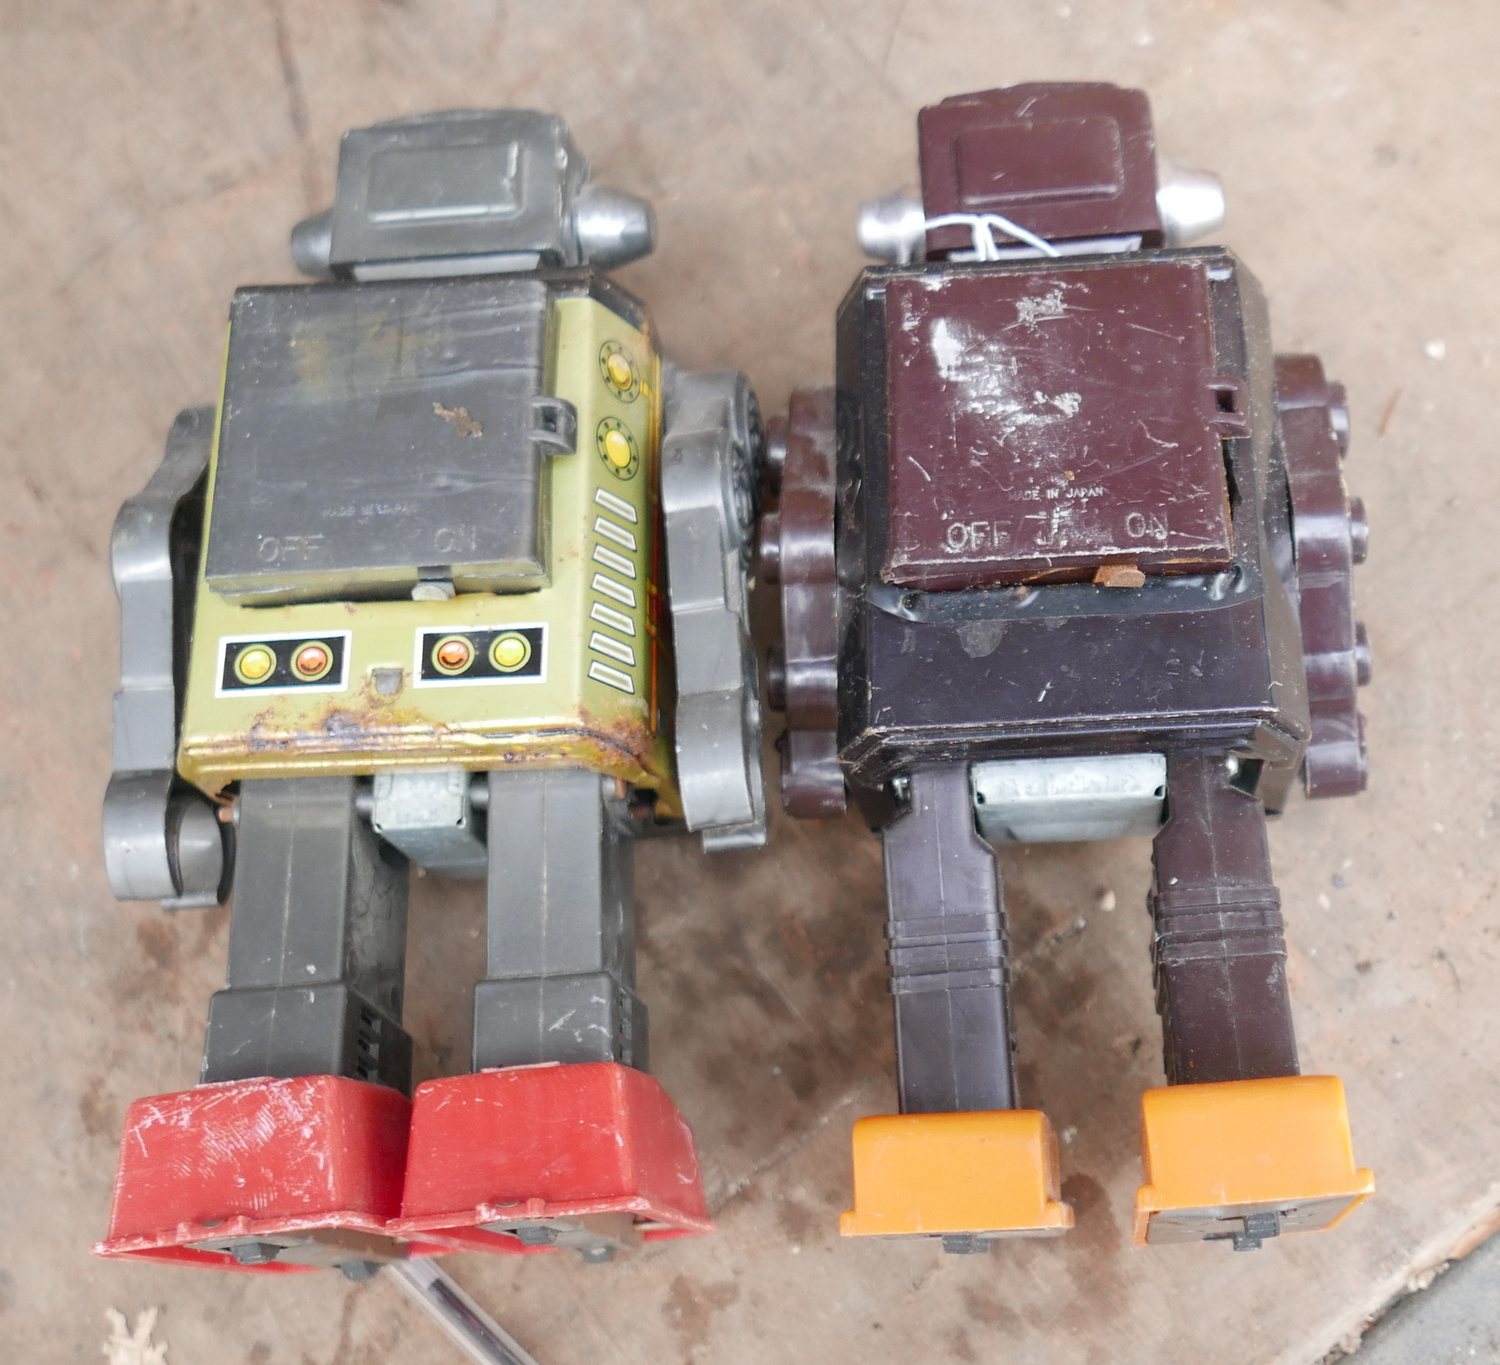 Pair of Vintage Toy Robots. - Image 2 of 2